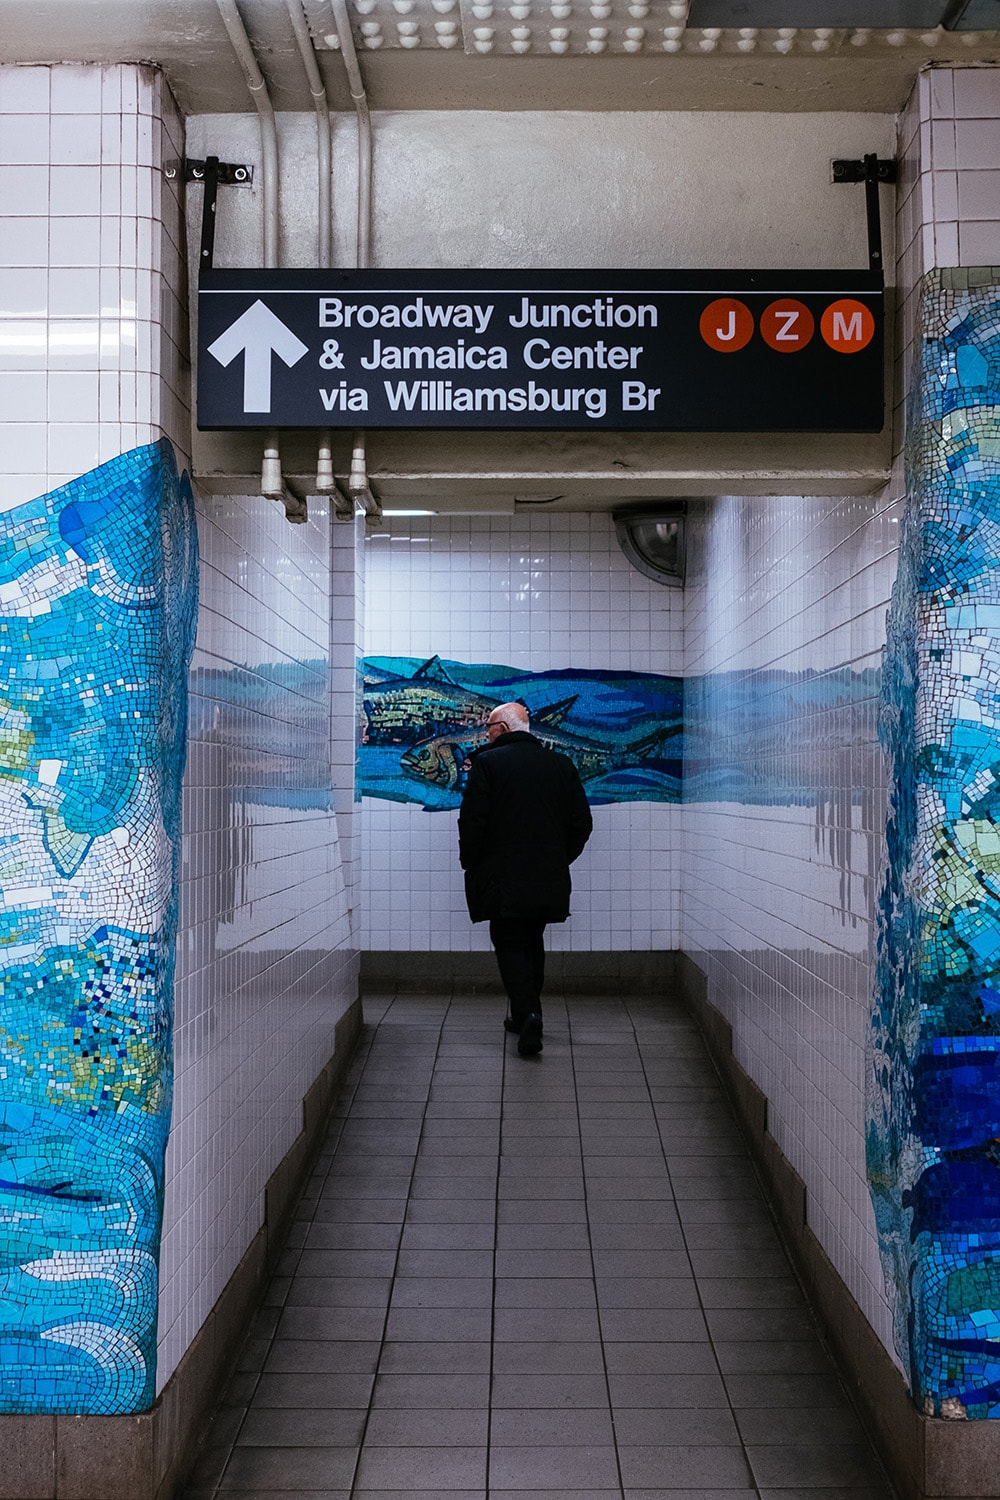 man walking in a subway station